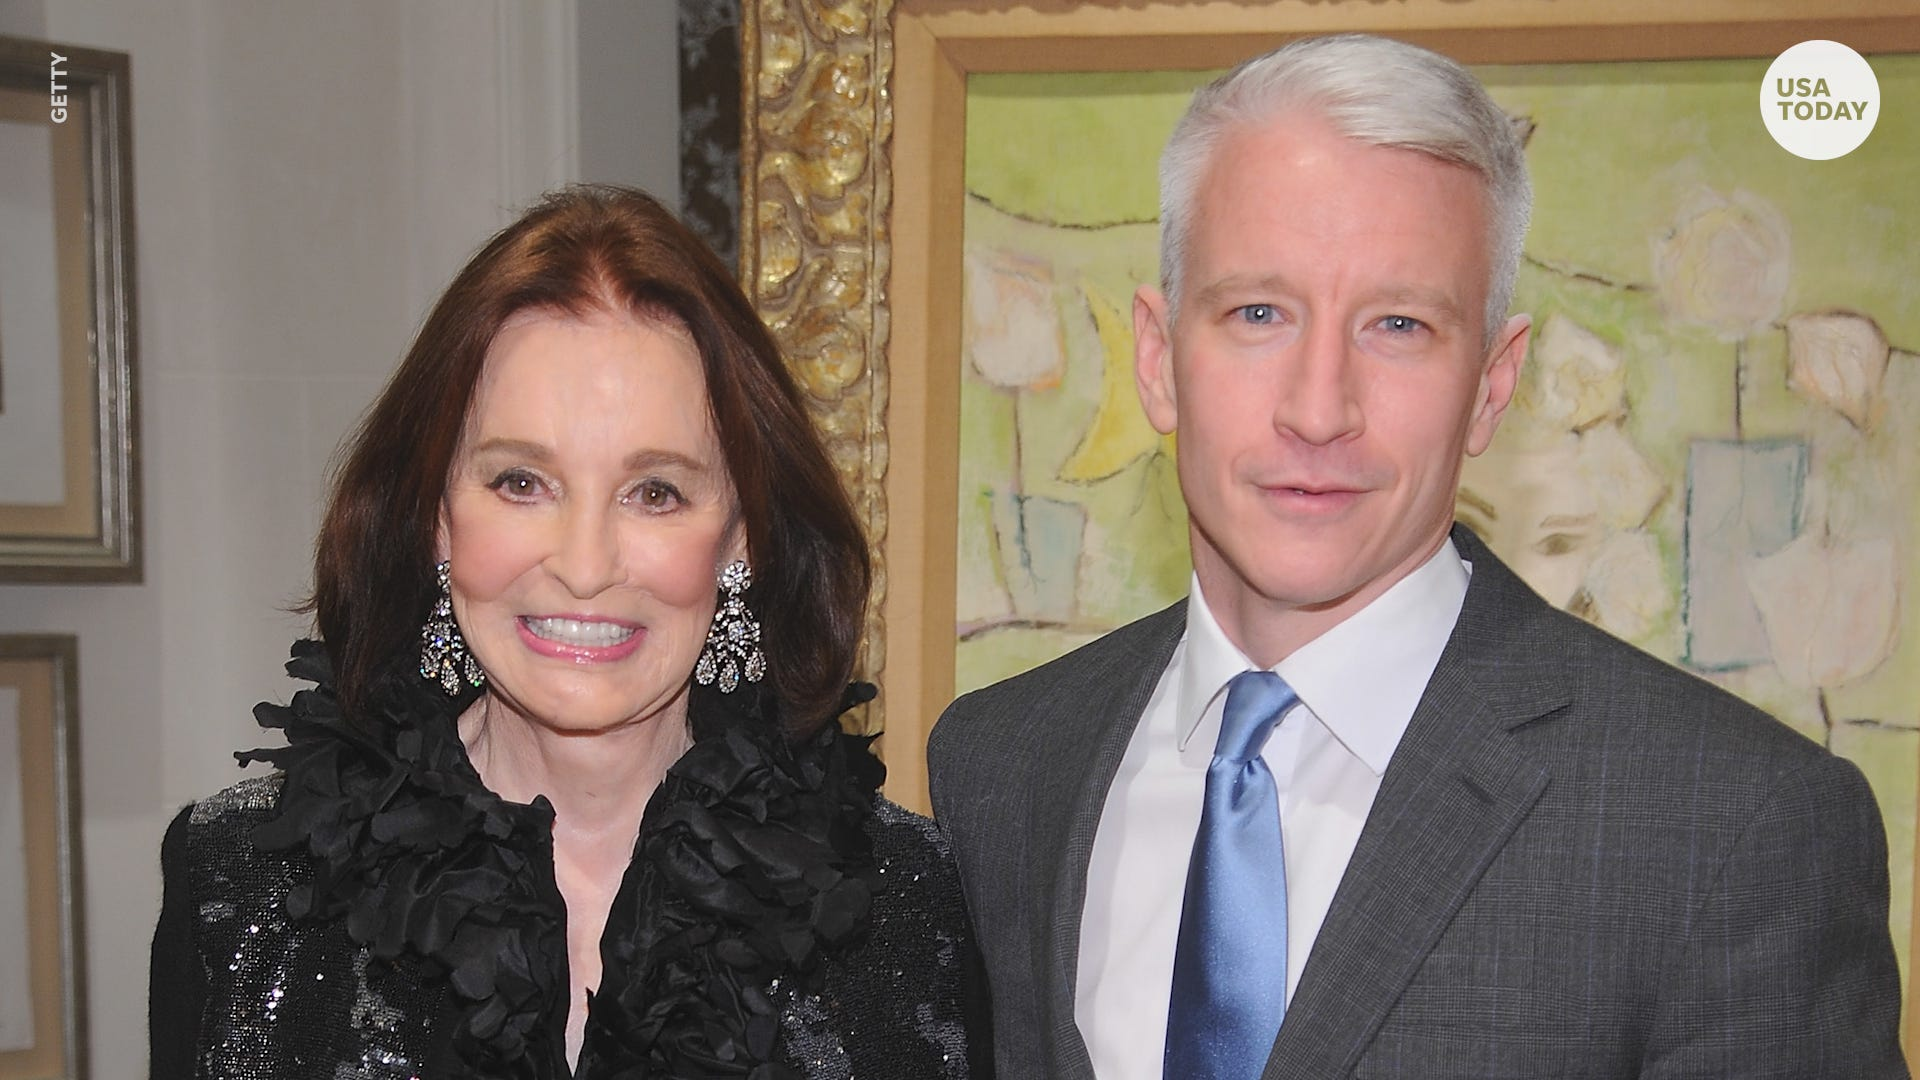 Gloria Vanderbilt, fashion icon and socialite, dies at age 95